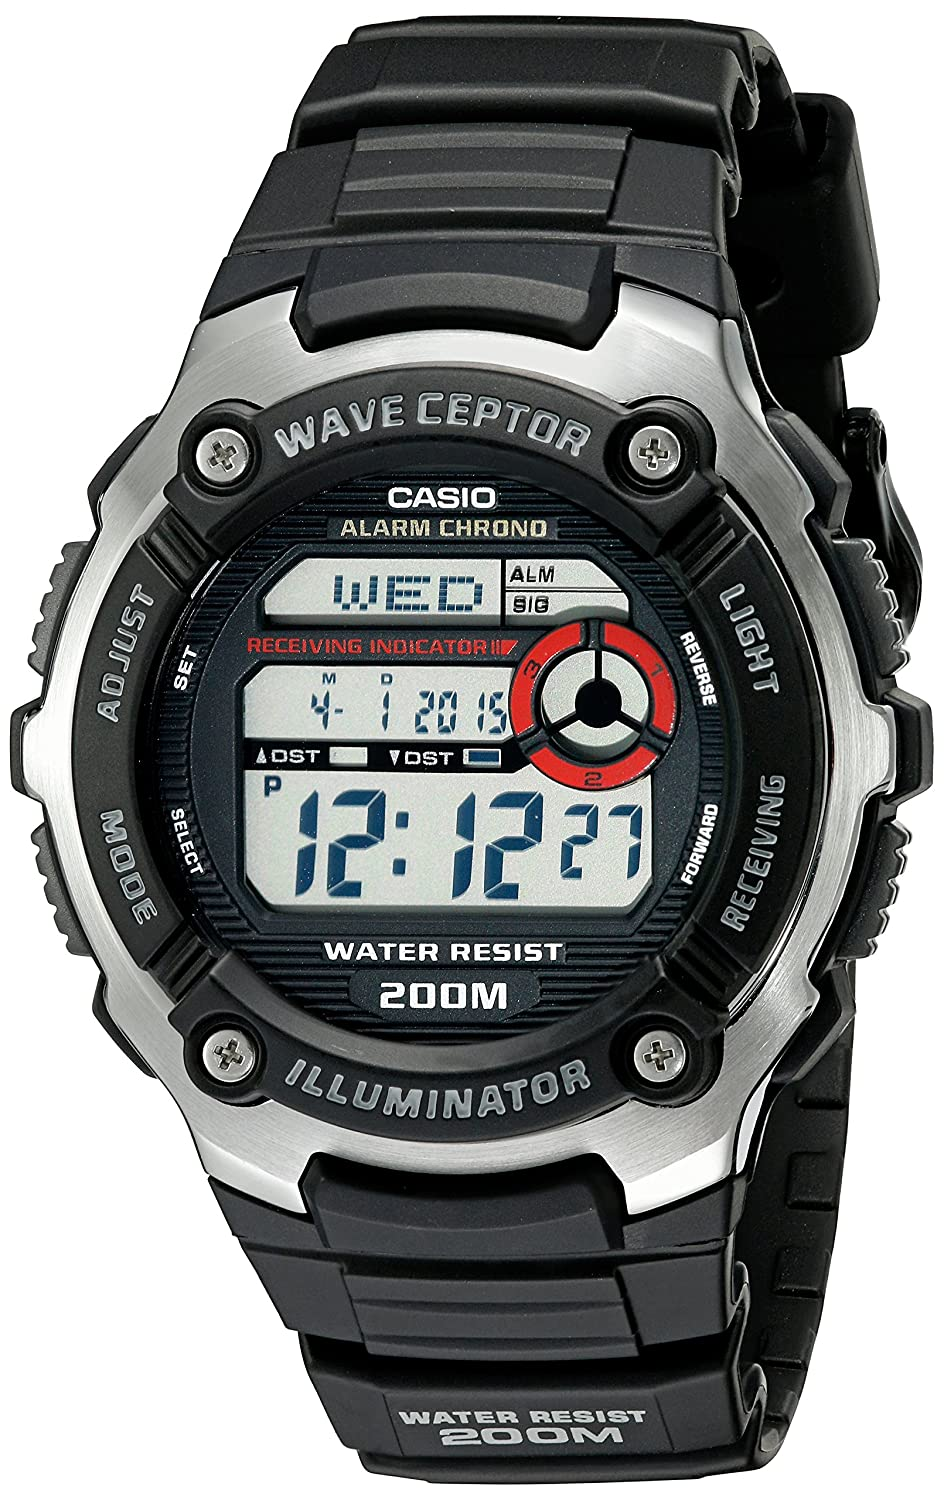 incorporate confusing extremetech the extreme a features tag casio come watch price watches s and with smartwatch shock latest g in smarter end casios but tough interfaces many i high not want of